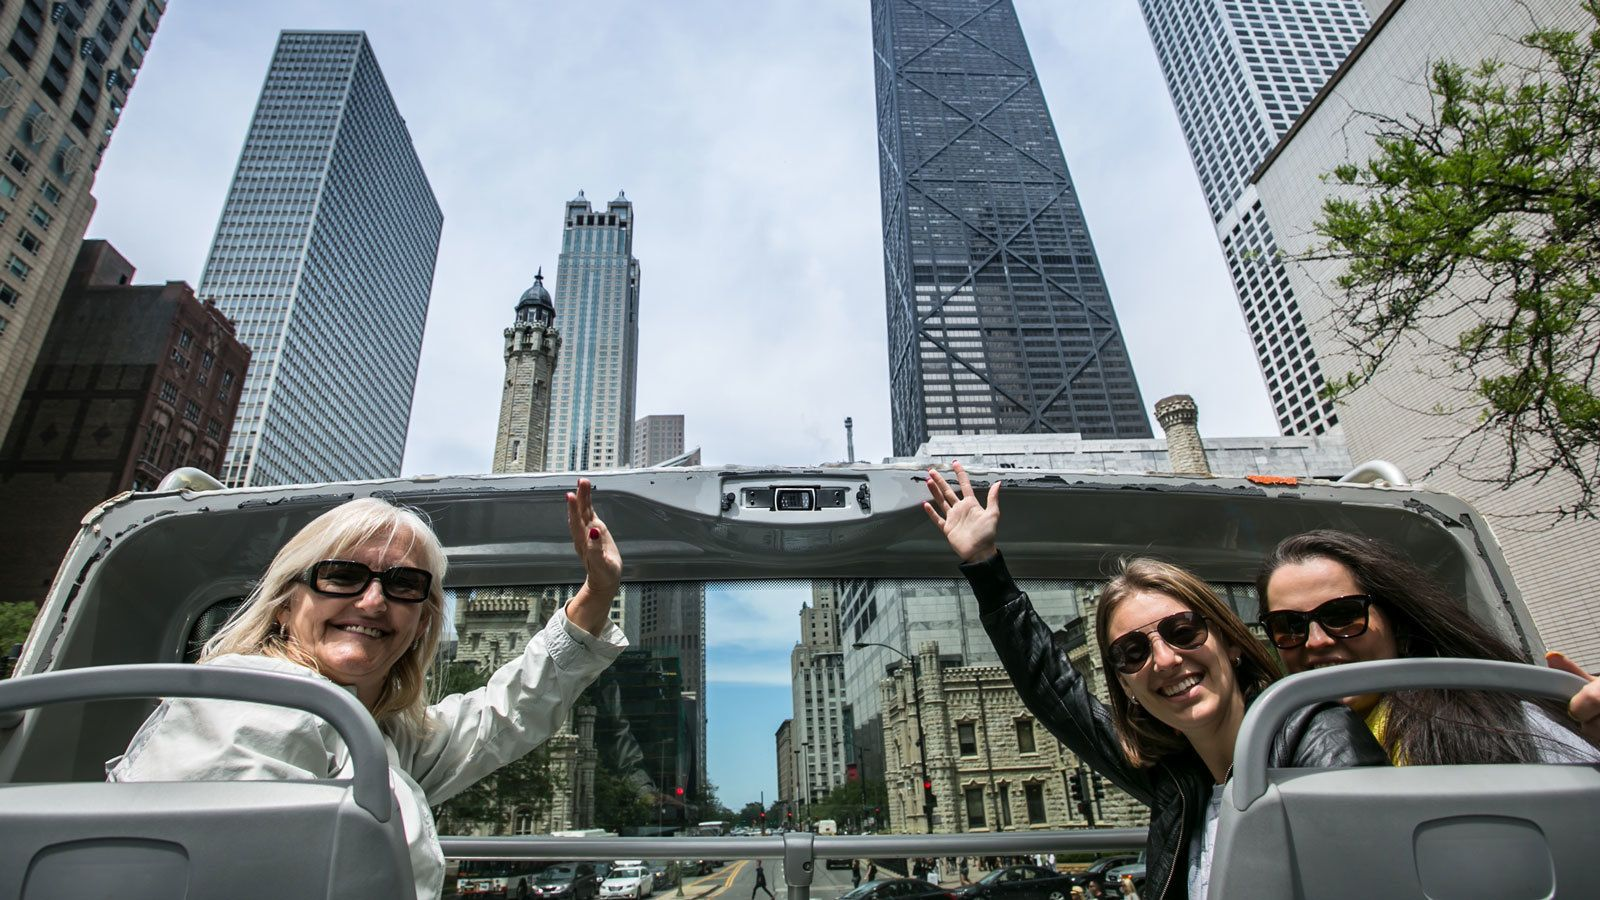 top deck bus riders waving in Chicago